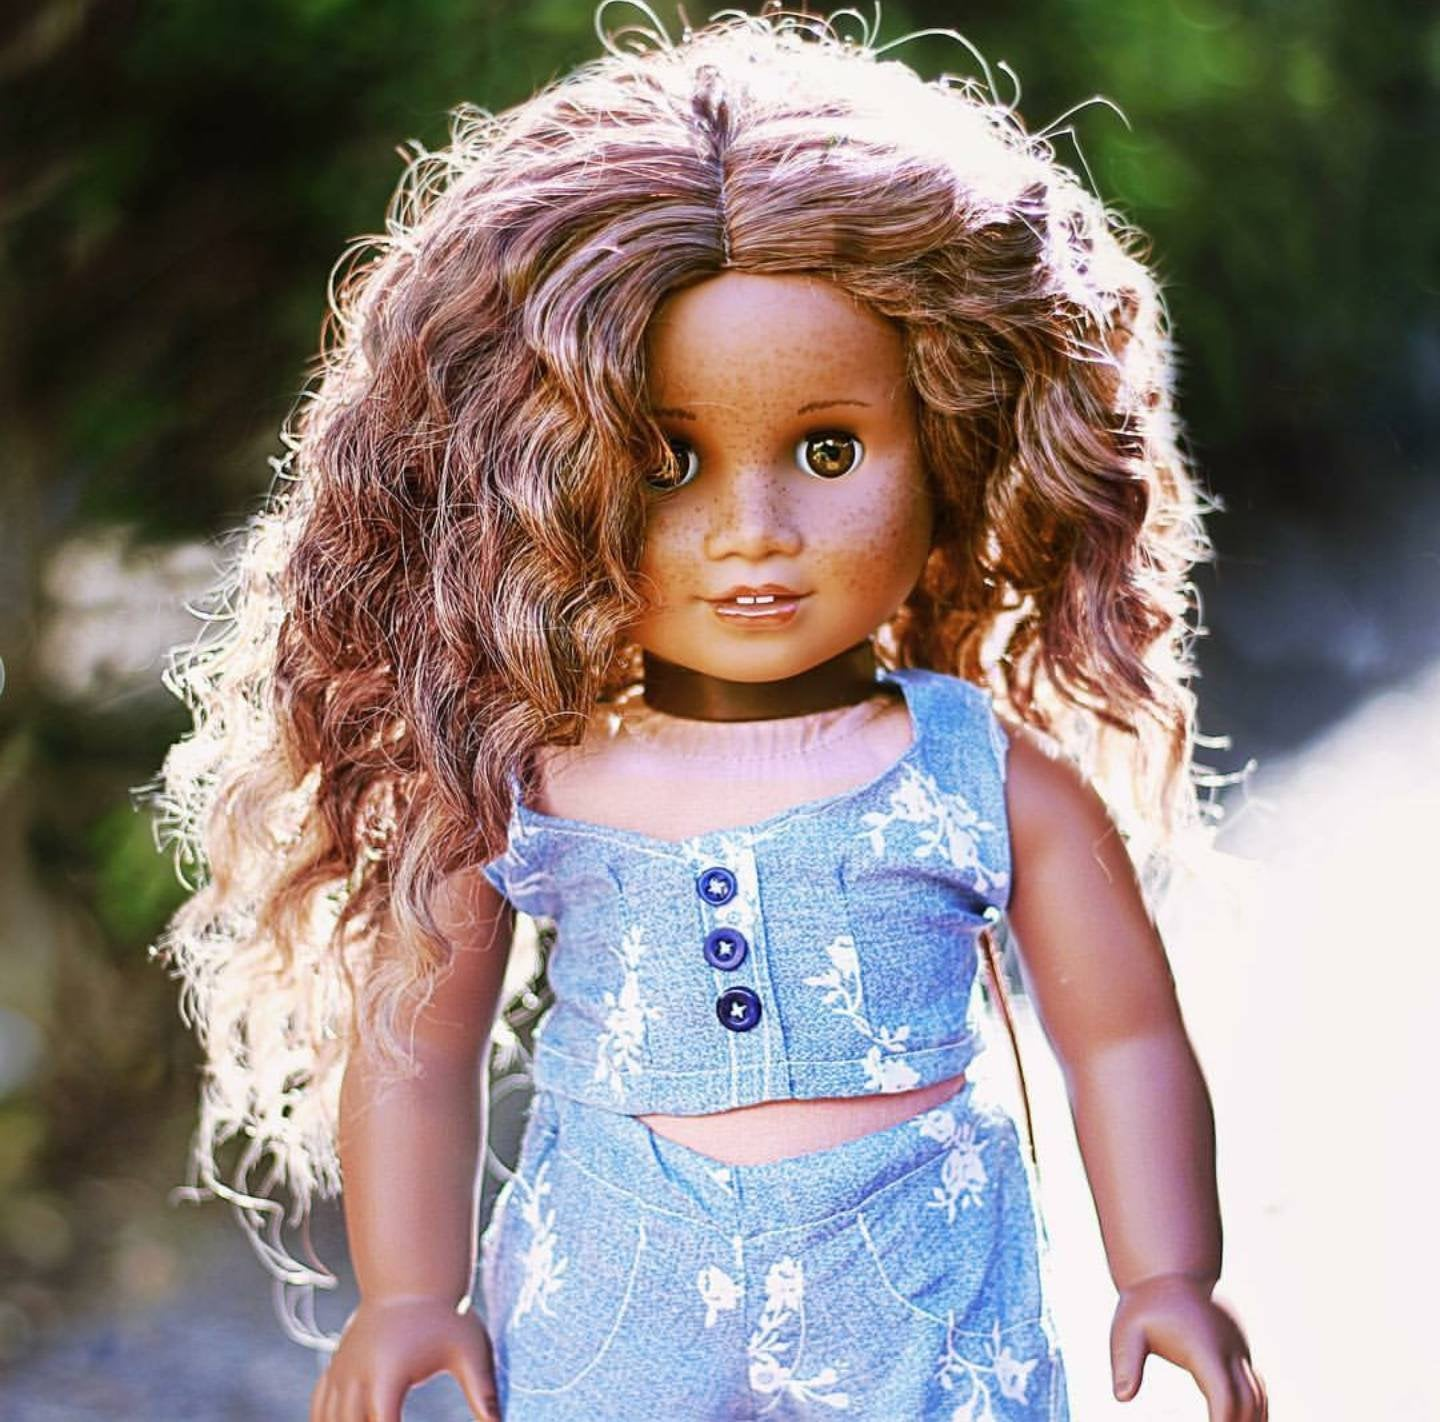 Zazou Dolls Exclusive BohoWaves WIG in Warm Glaze for 18 Inch dolls such as OG and American Girl